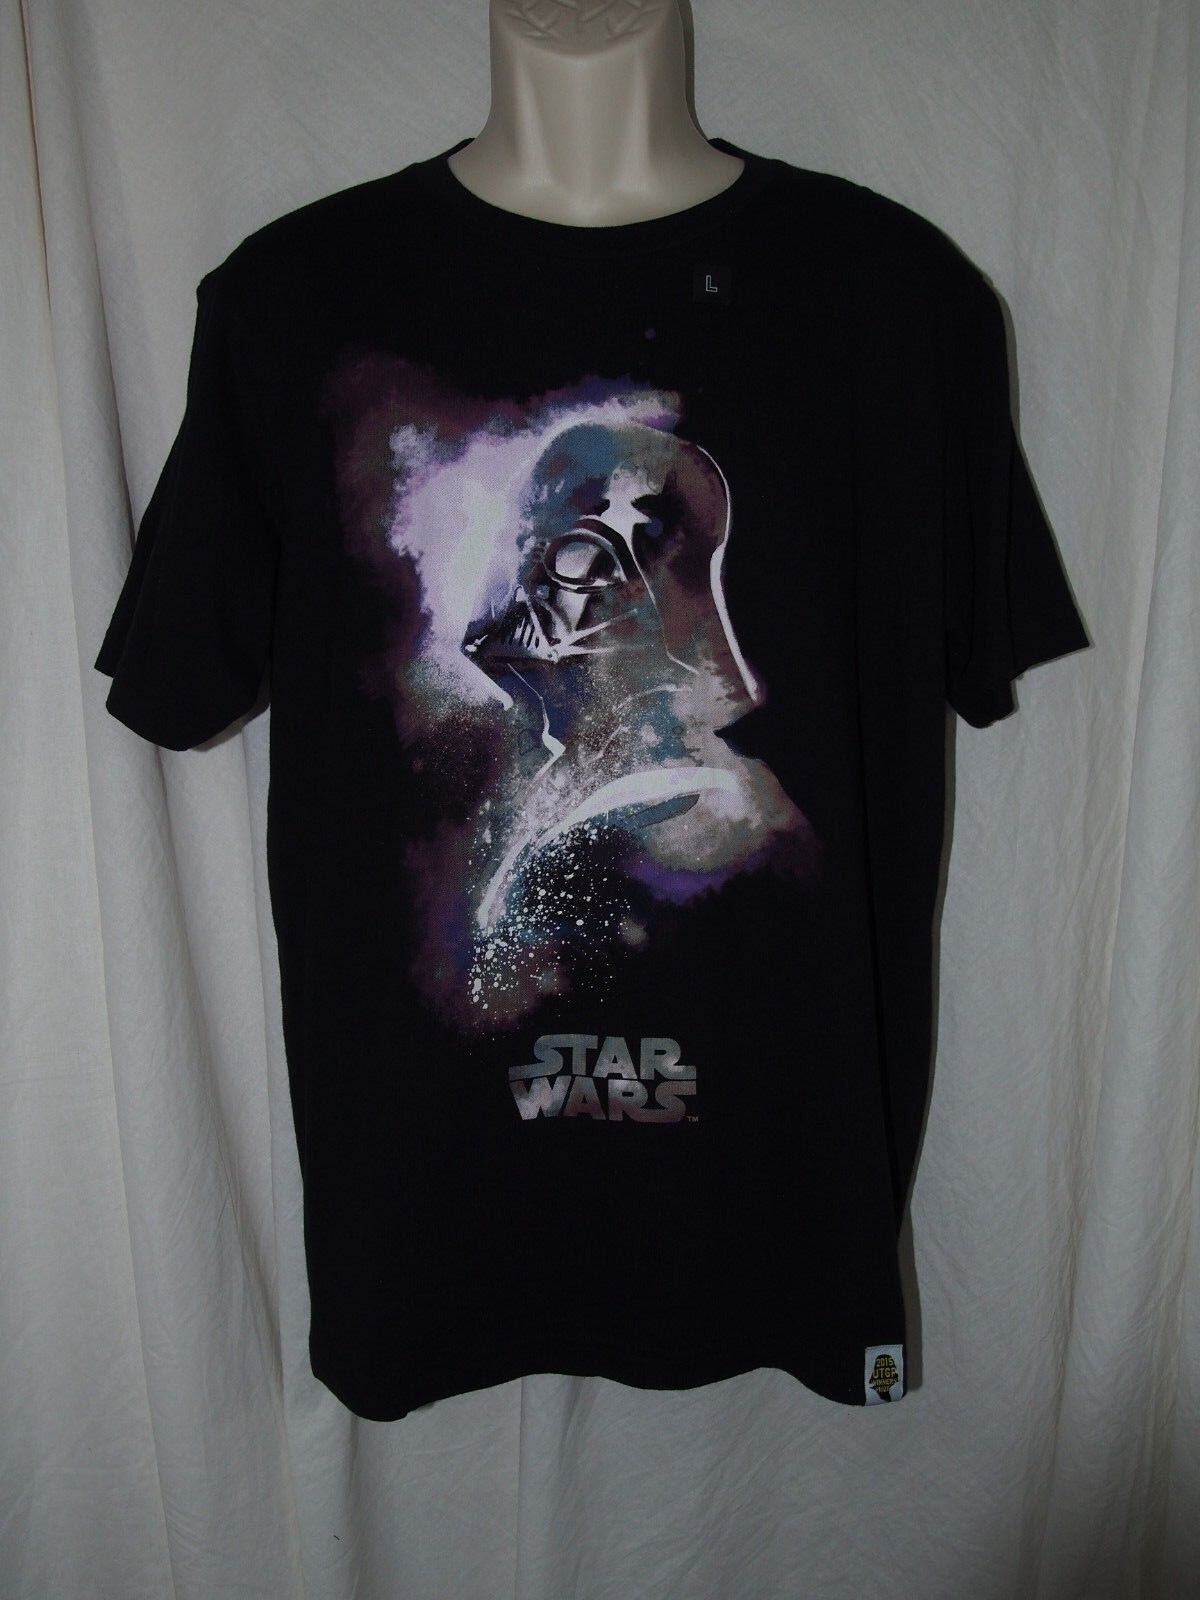 Uniqlo 2015 Grand Prix Star Wars VADER Limited Edition T-shirt Men's size Large